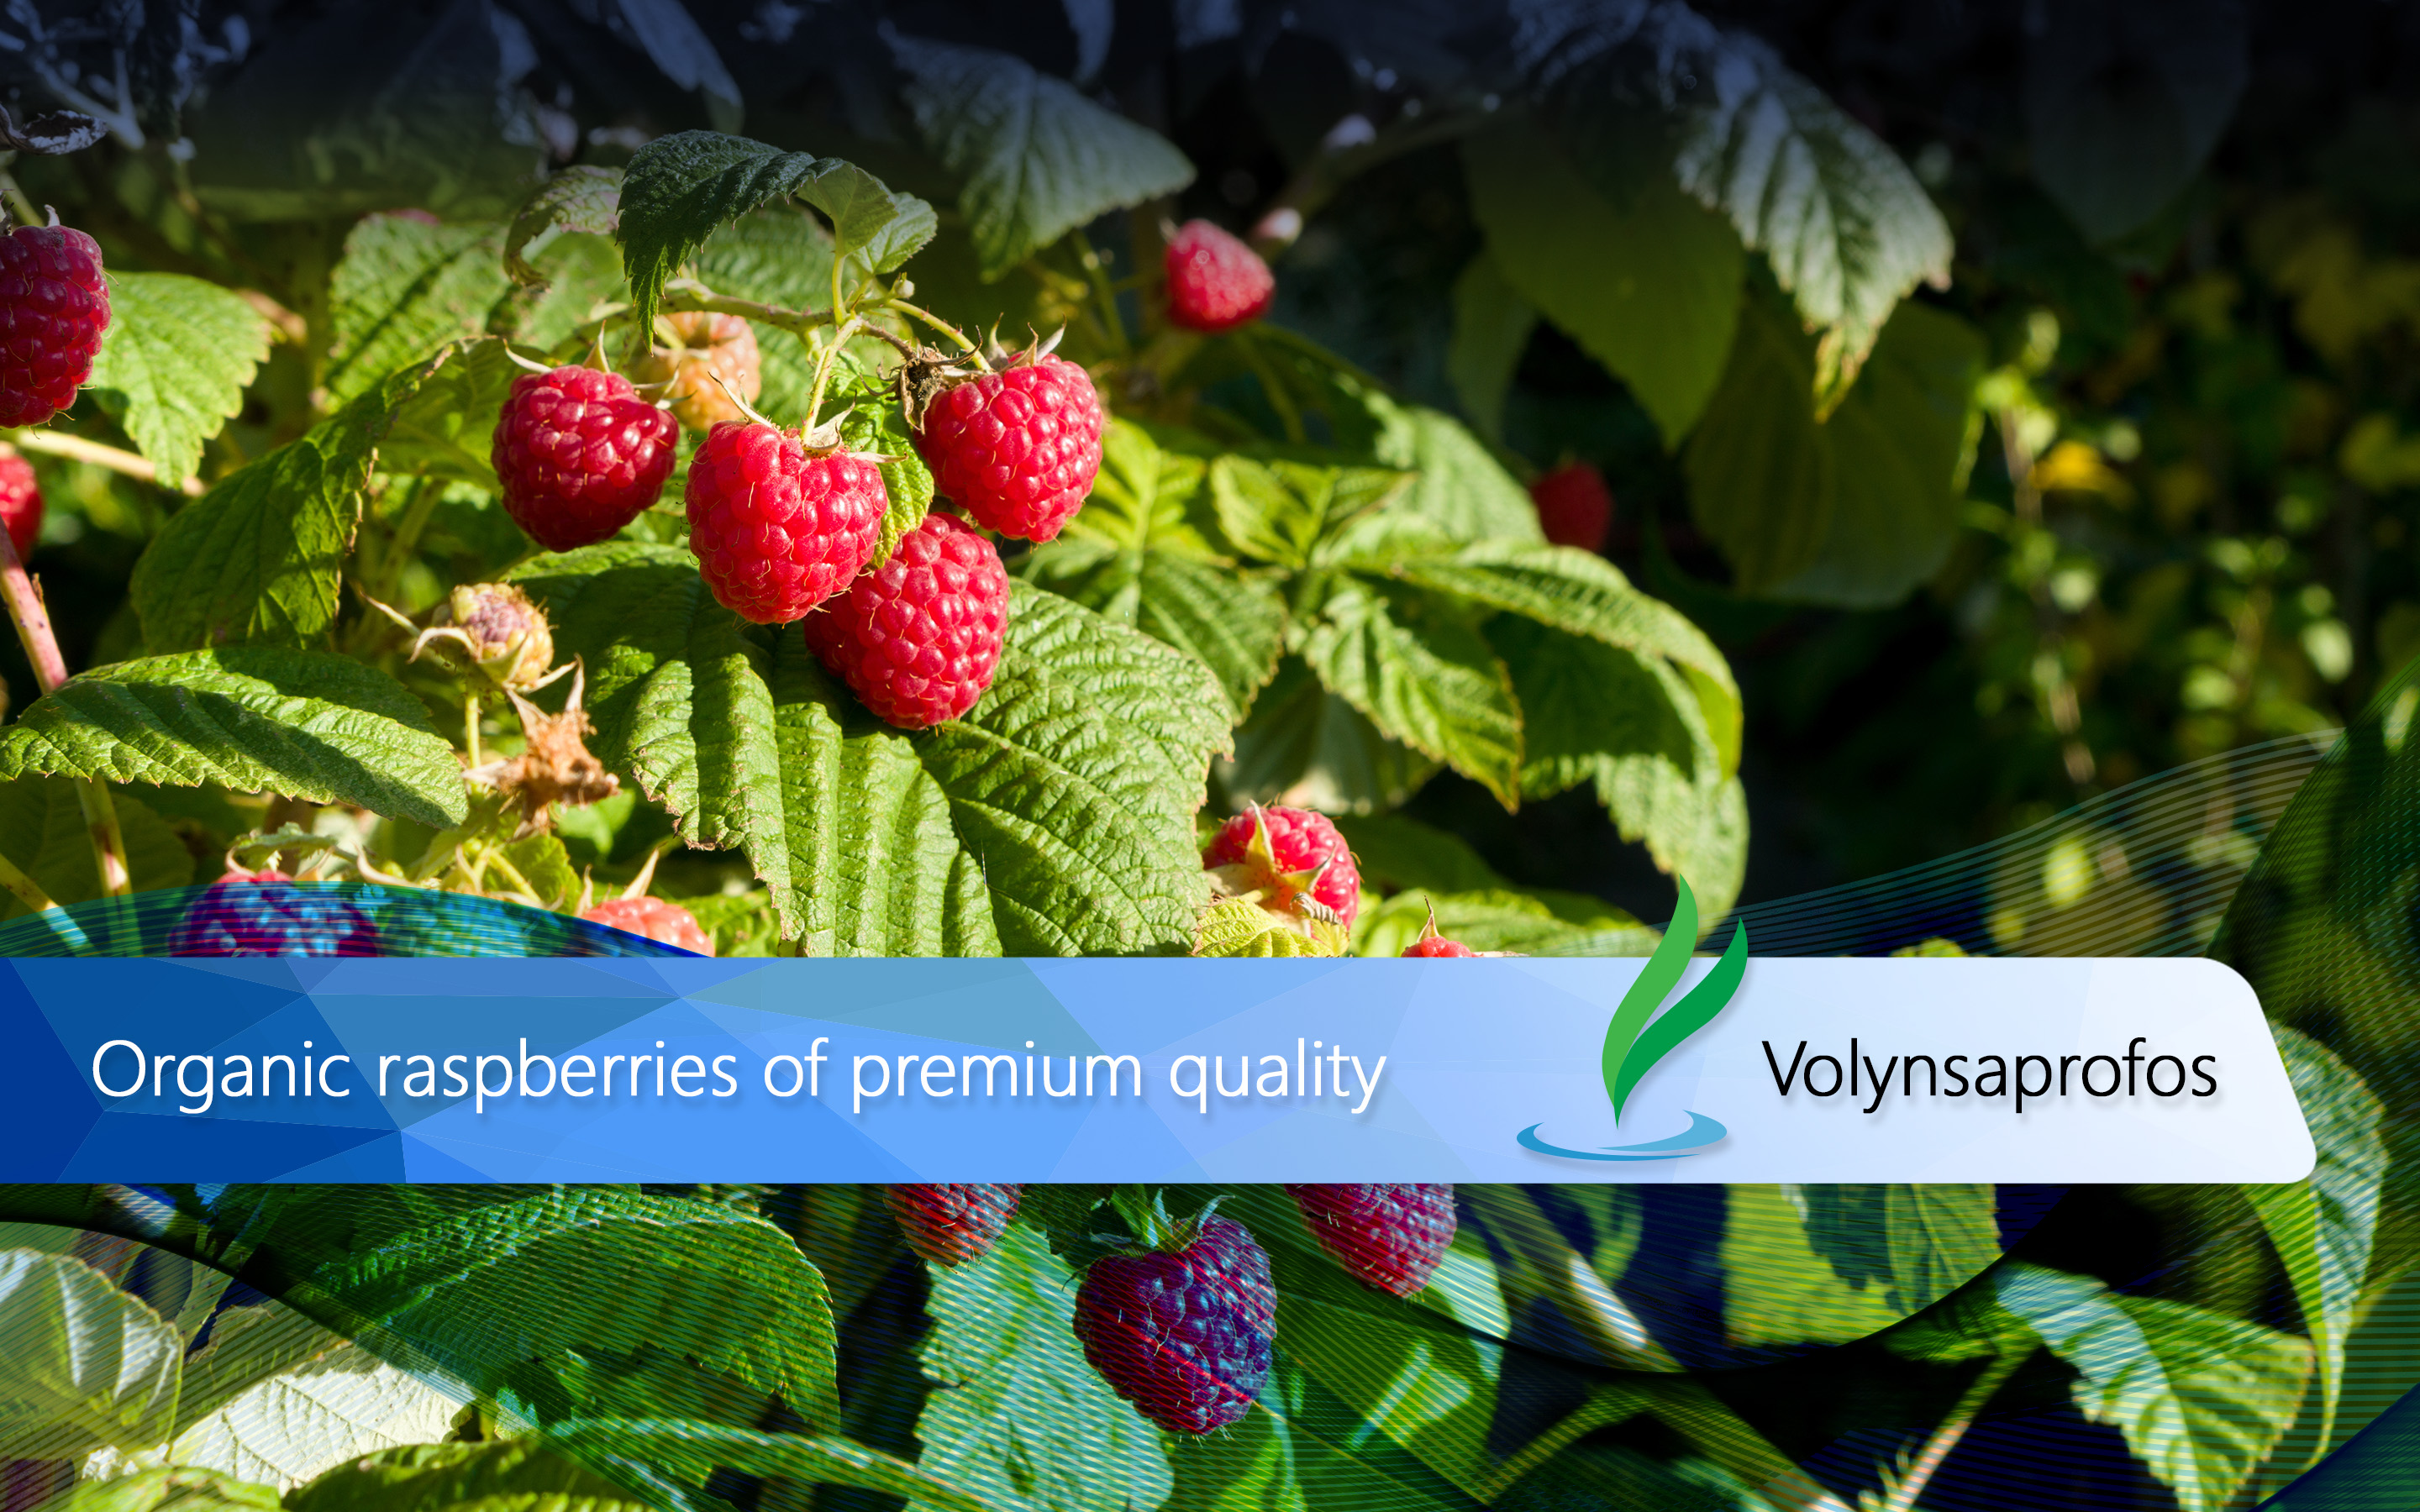 1-Organic-raspberries-of-premium-quality